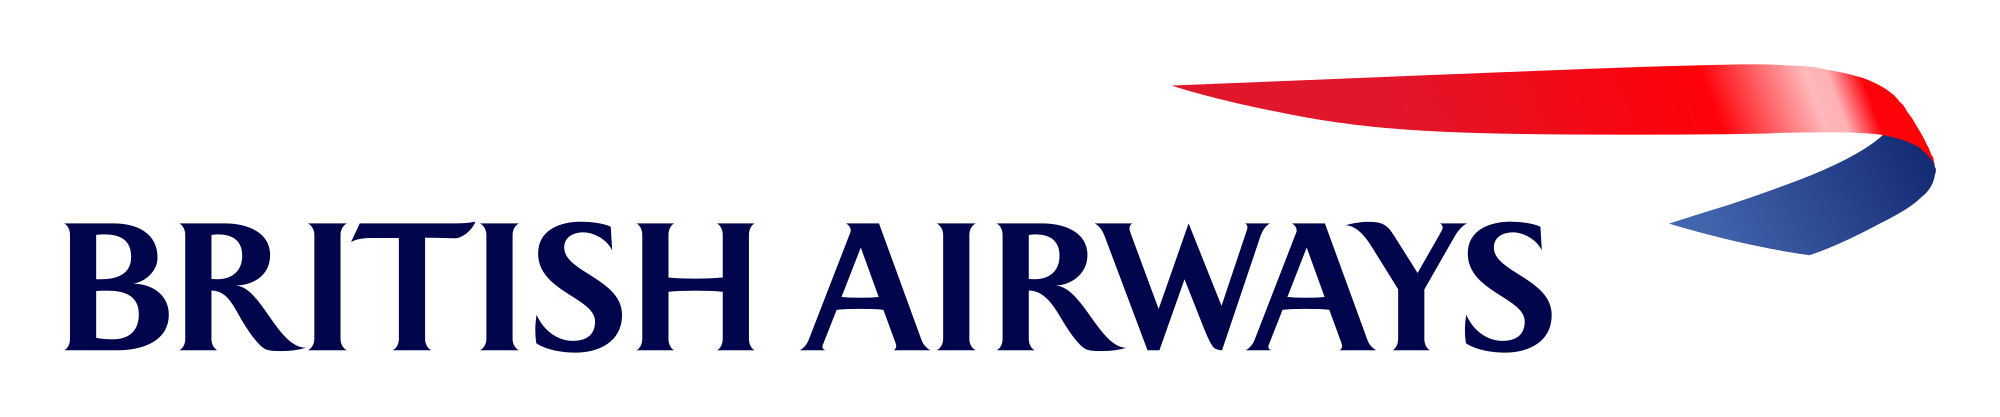 . PlusPng.com Datei:British Airways Logo.svg PlusPng.com  - British Airways Logo PNG